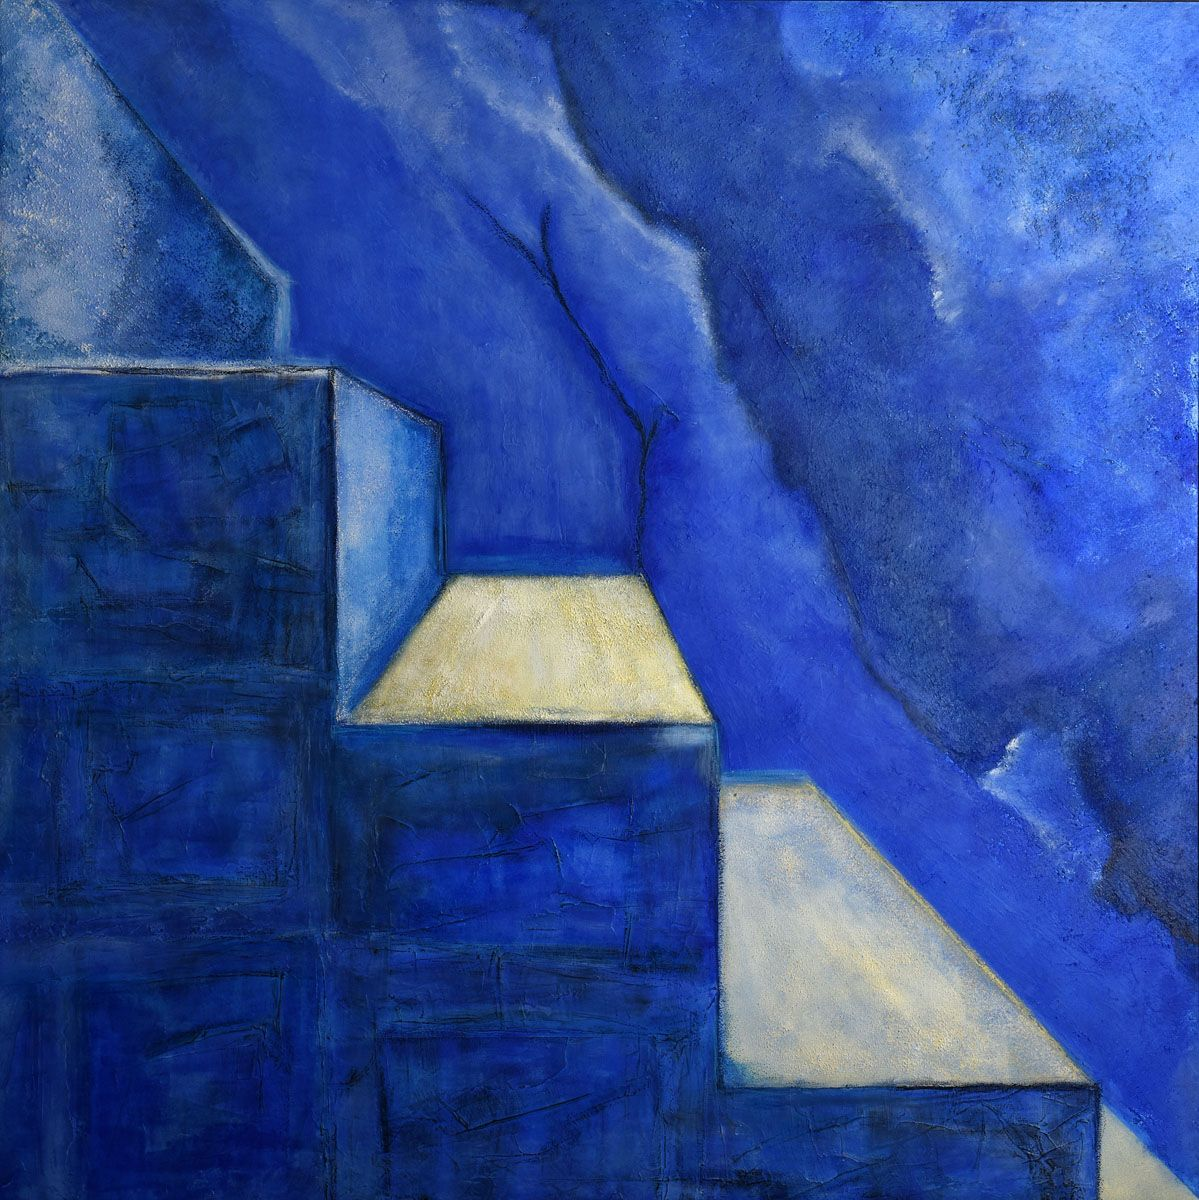 Stairway_to_Heaven_painting_by_Vibha_Nanda-compressor